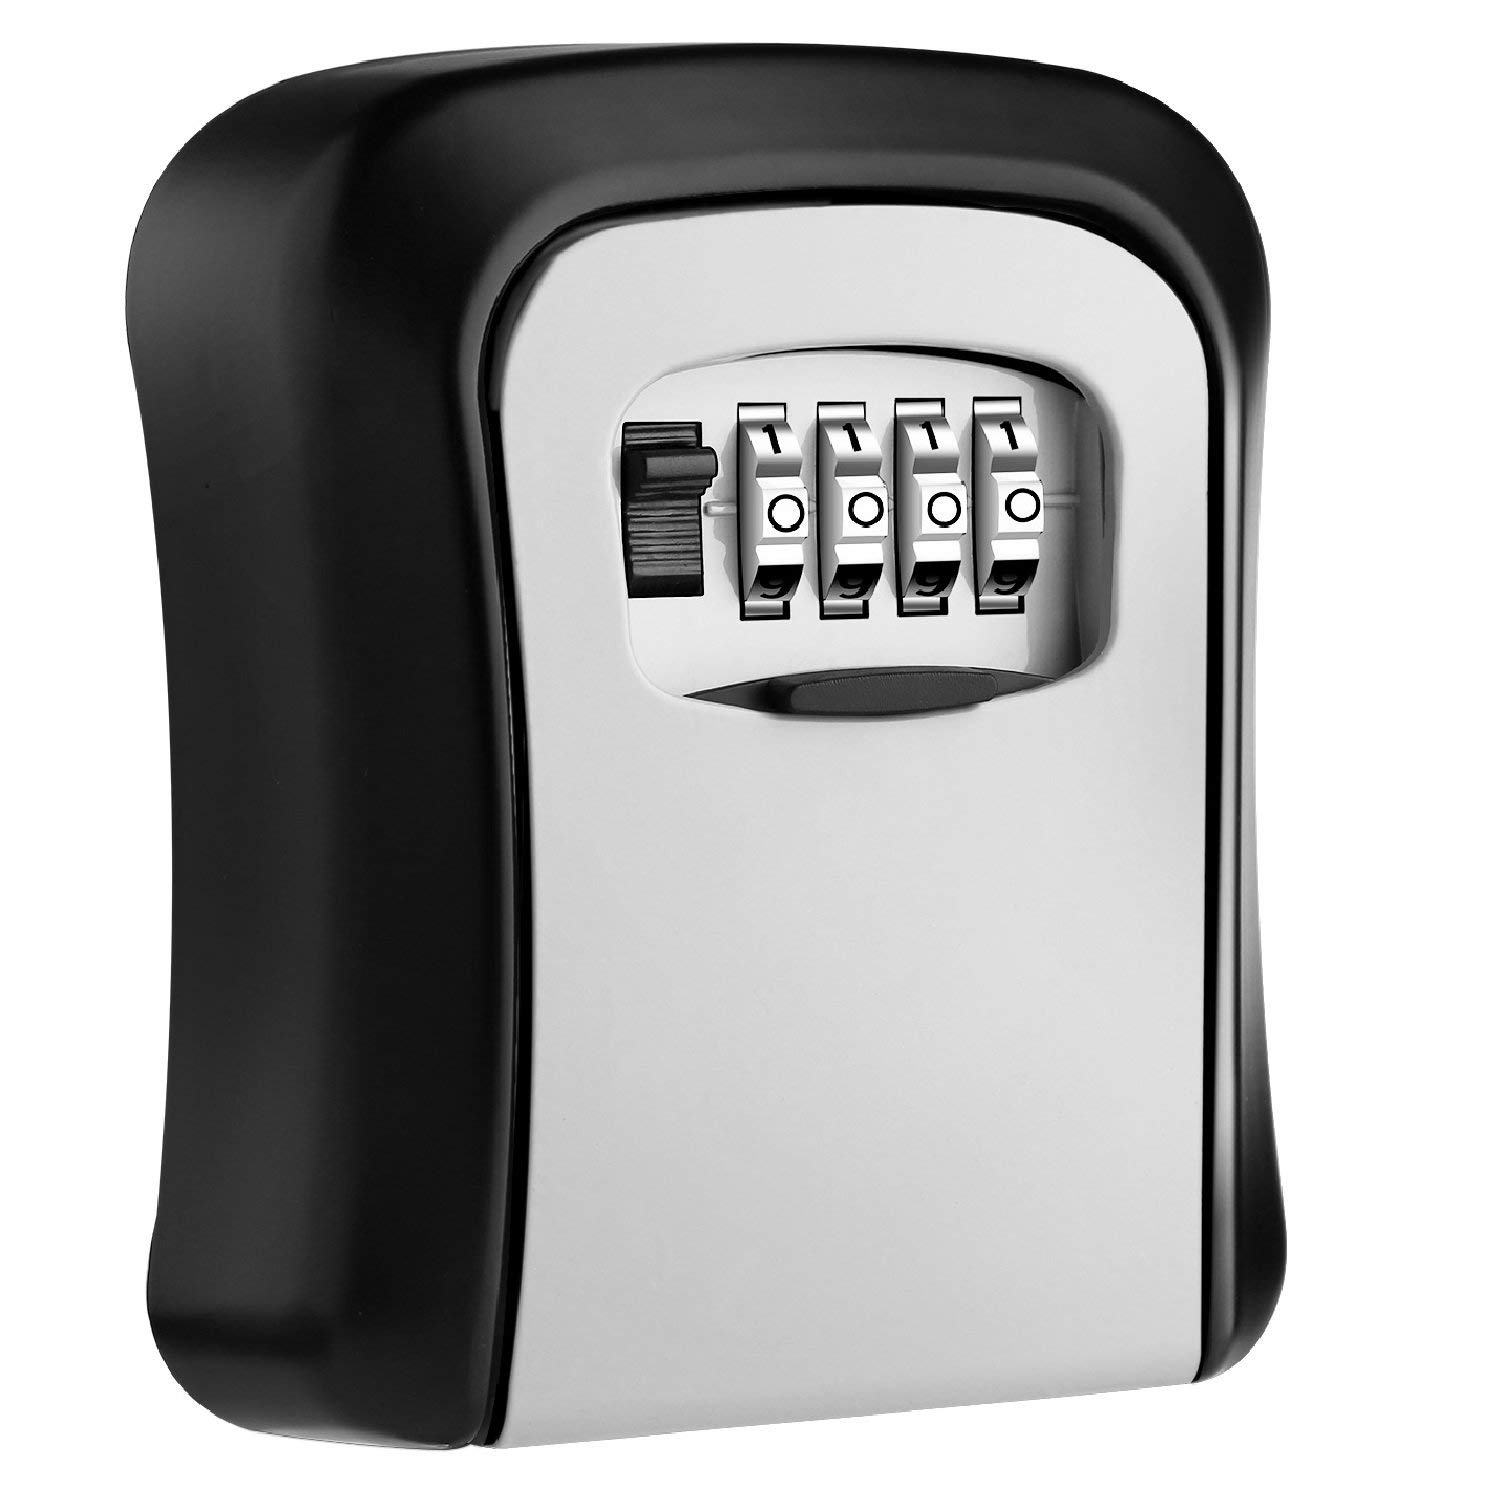 mool-key-lock-box-wall-mounted-aluminum-alloy-key-safe-box-weatherproof-4-digit-combination-key-storage-lock-box-indoor-outdoo